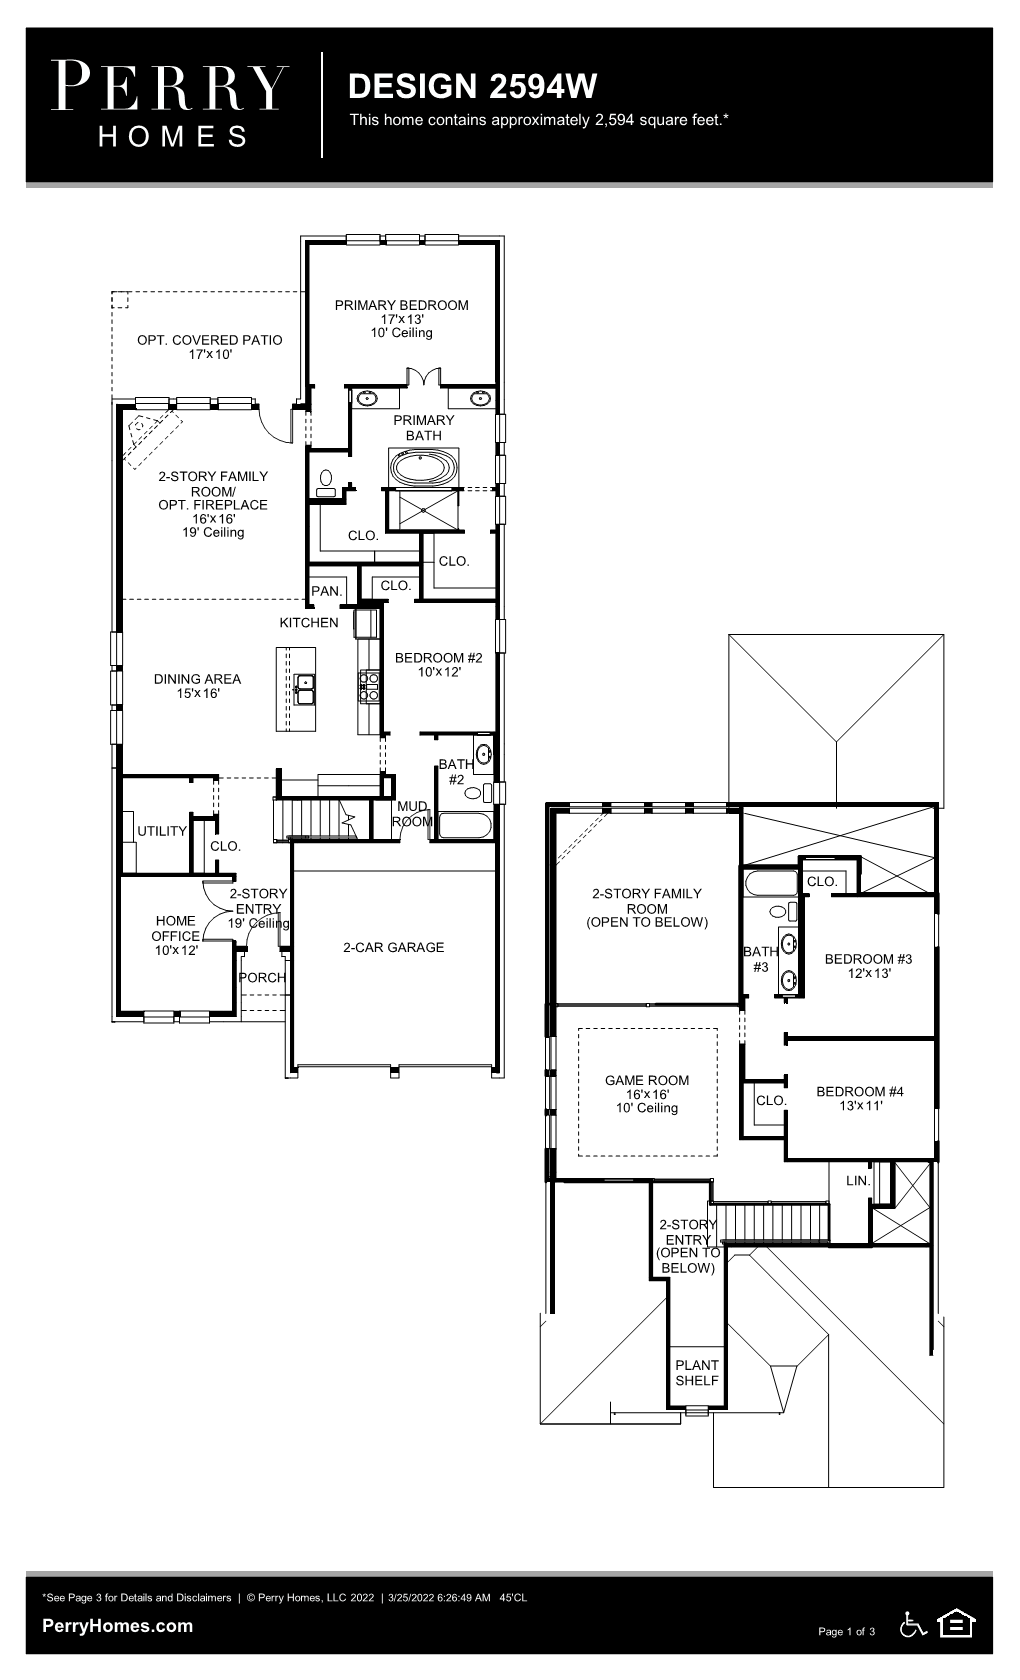 Floor Plan for 2594W